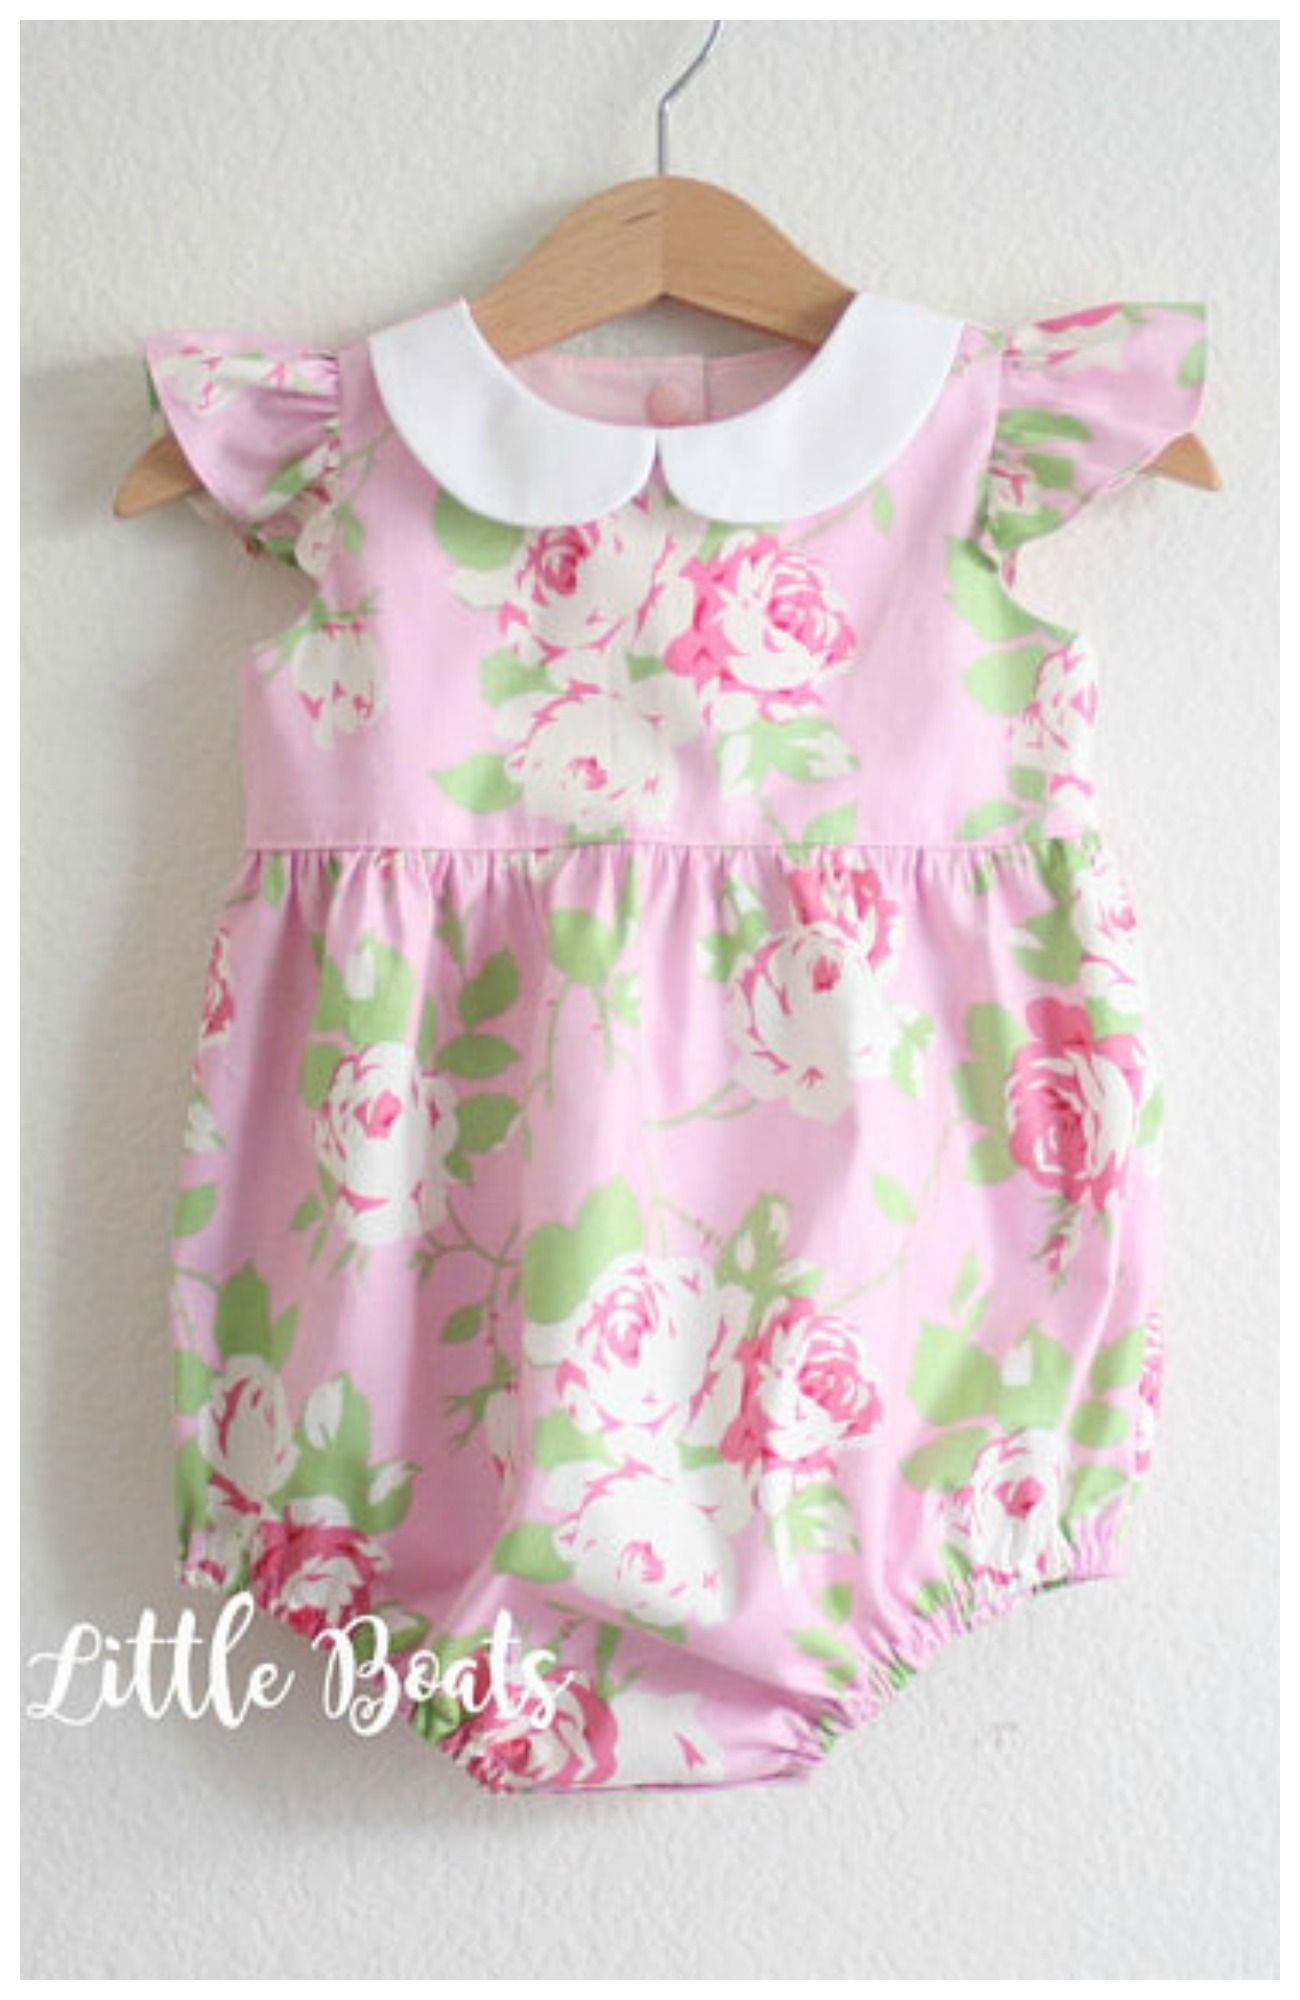 763bbd3b2228 Chloe Pink Baby Toddler Girl Peter pan Collar Bubble Romper Playsuit - Easter  Baby shower gift Photo shoot Classic Vintage Shabby Chic Style  affiliate